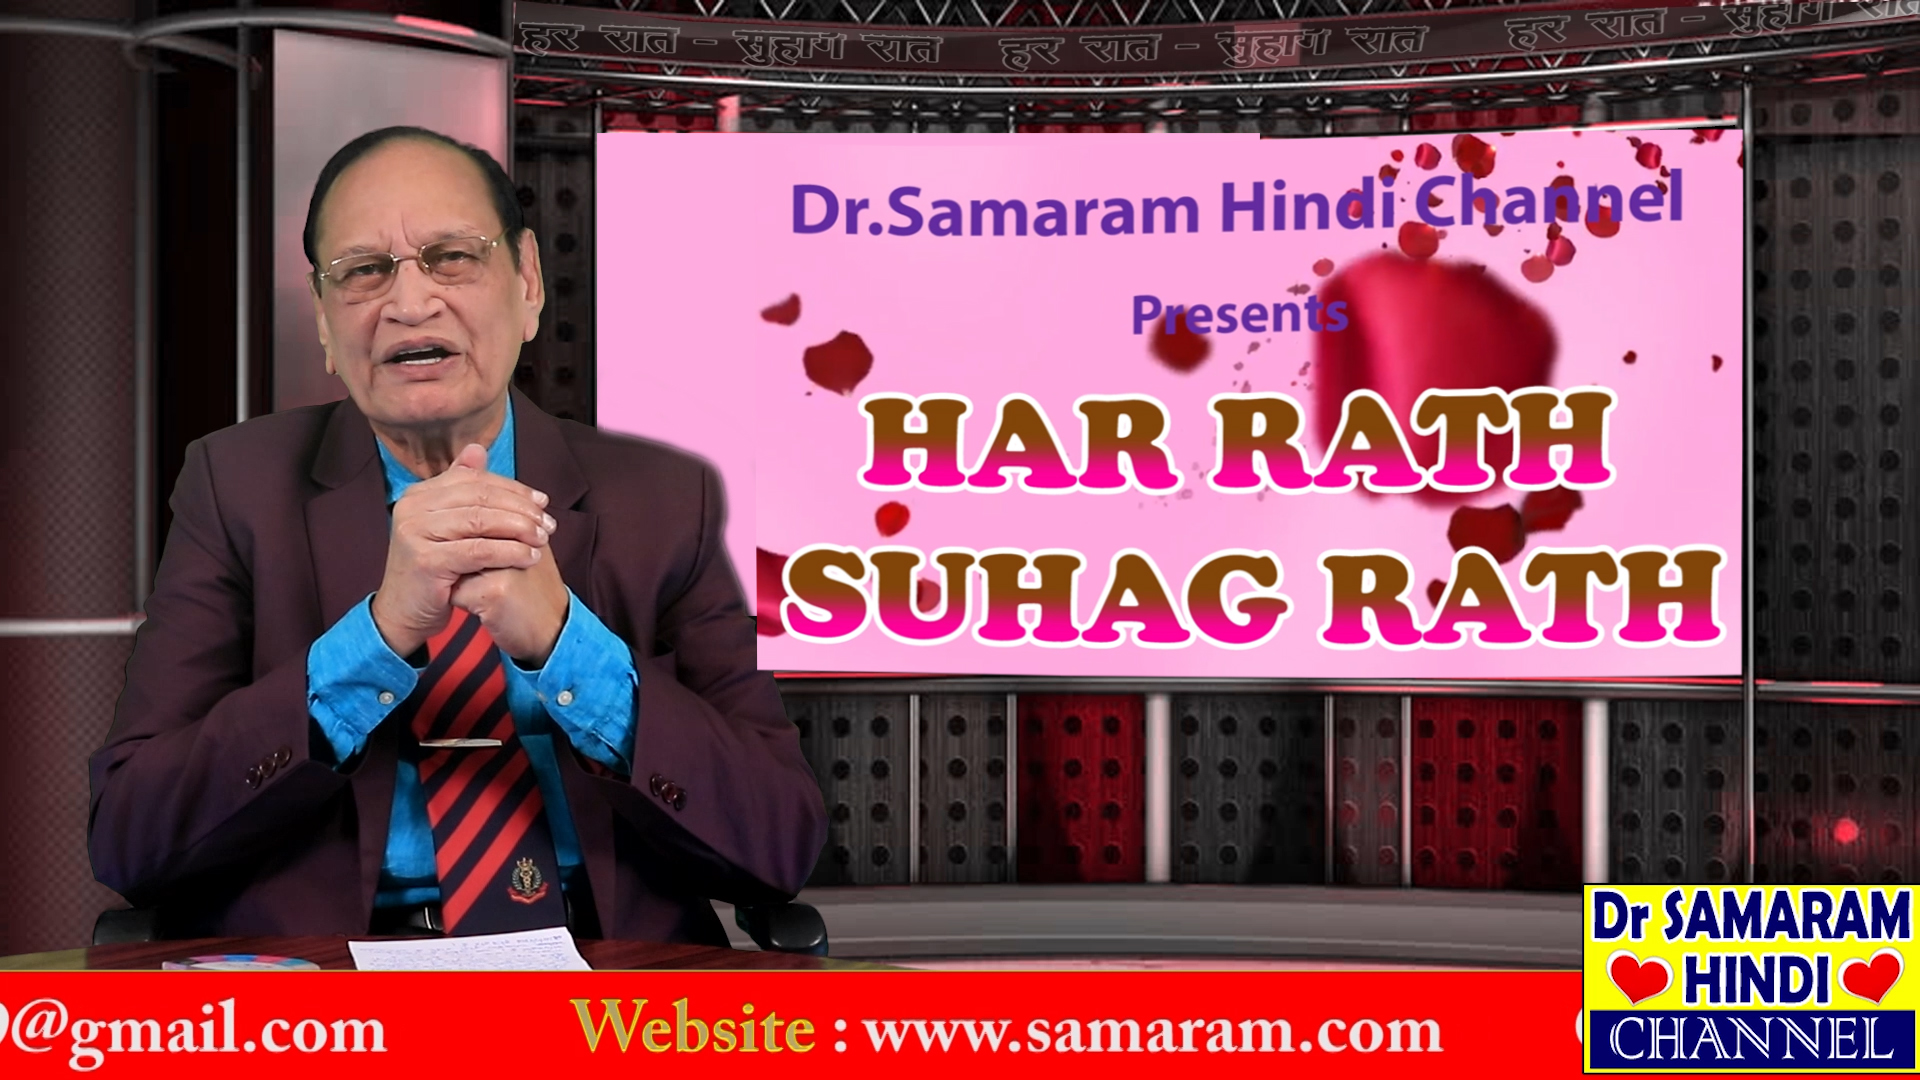 Dr Samaram Hindi Channel